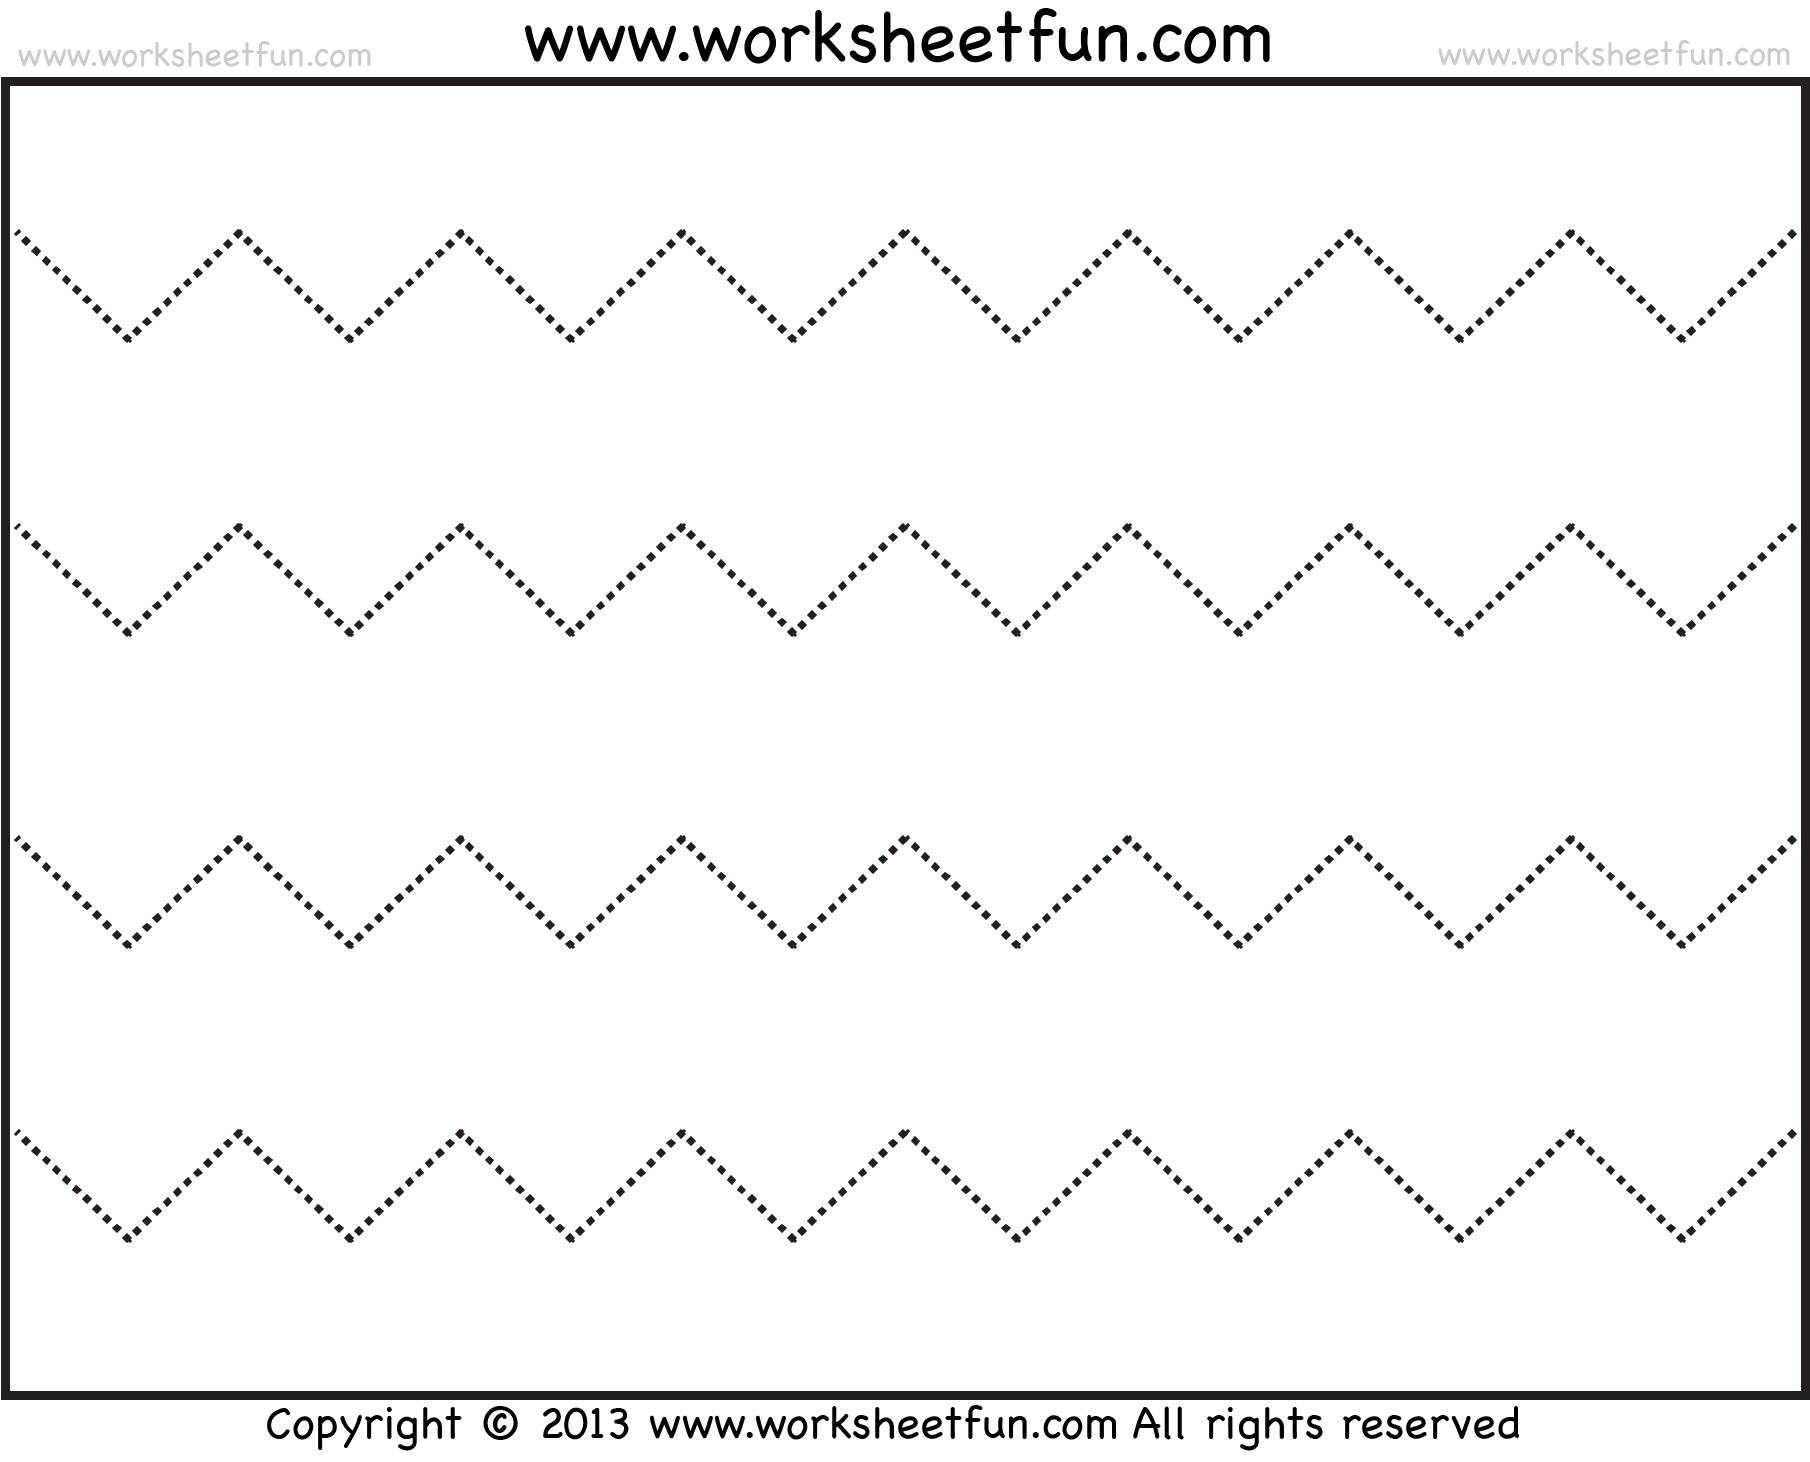 Worksheet Trace A Rhombus For Preschoolers